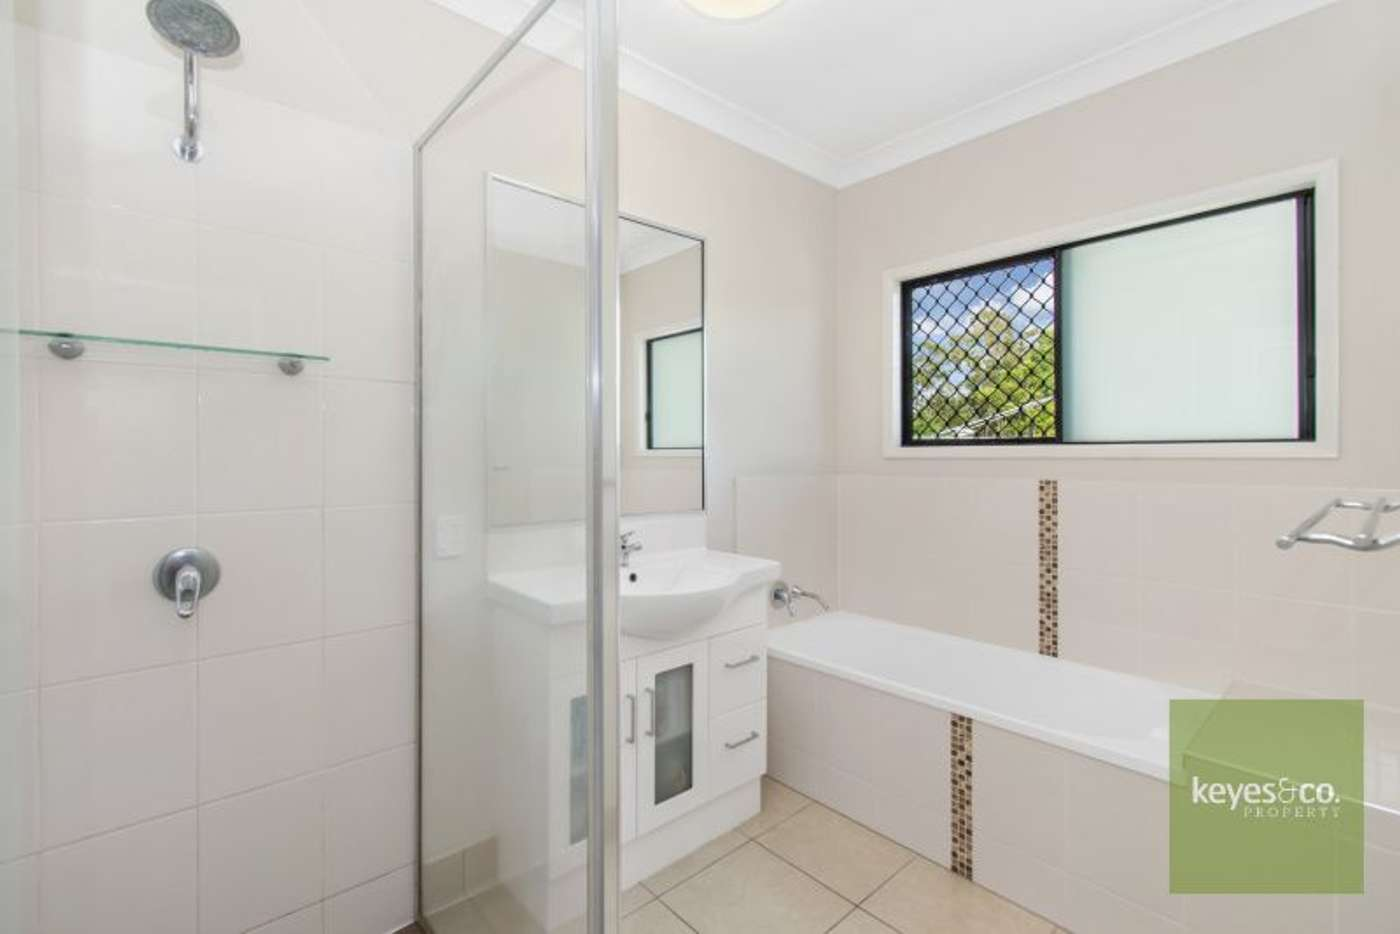 Fifth view of Homely house listing, 2-14 Corser Drive, Alligator Creek QLD 4816